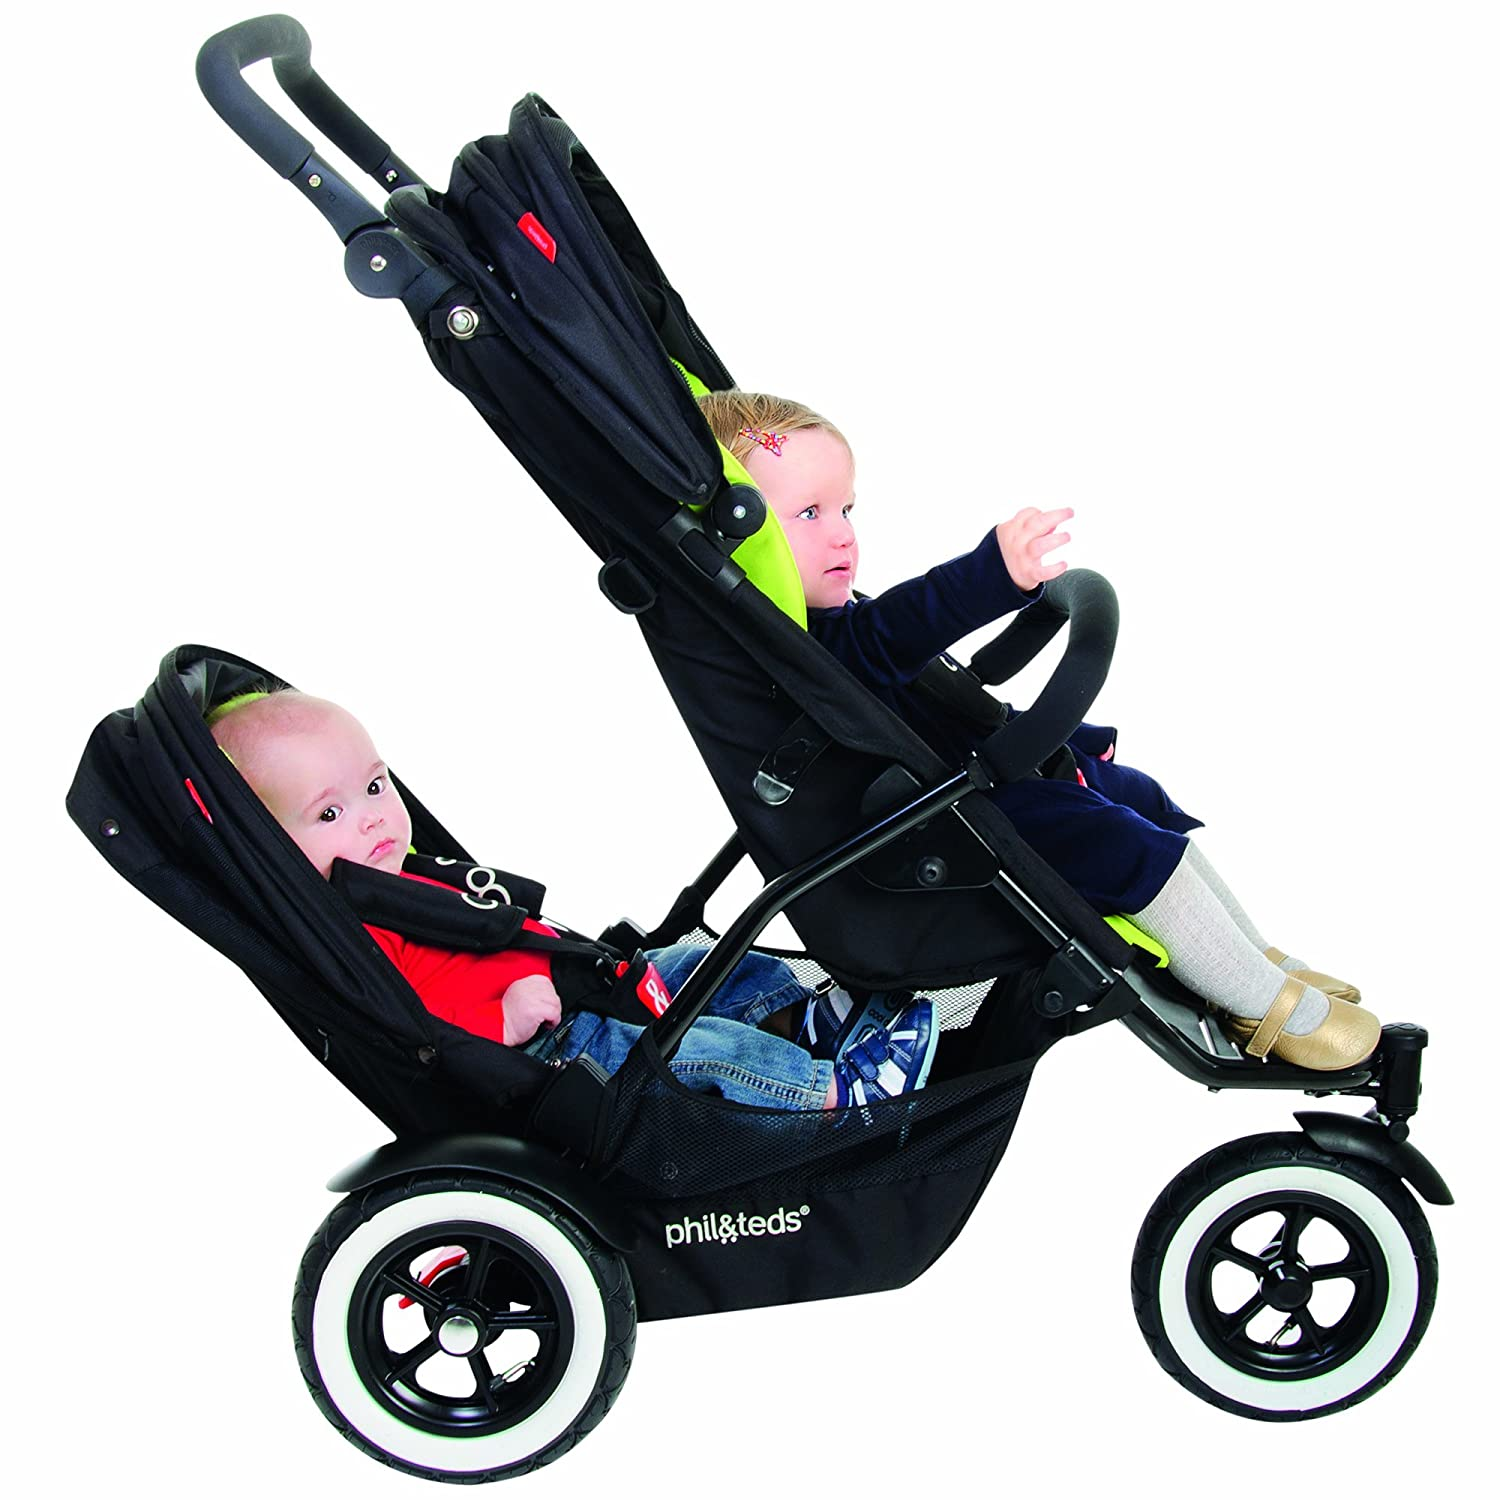 Amazon phil&teds Dot Buggy Stroller Flint Discontinued by Manufacturer Infant Car Seat Stroller Travel Systems Baby